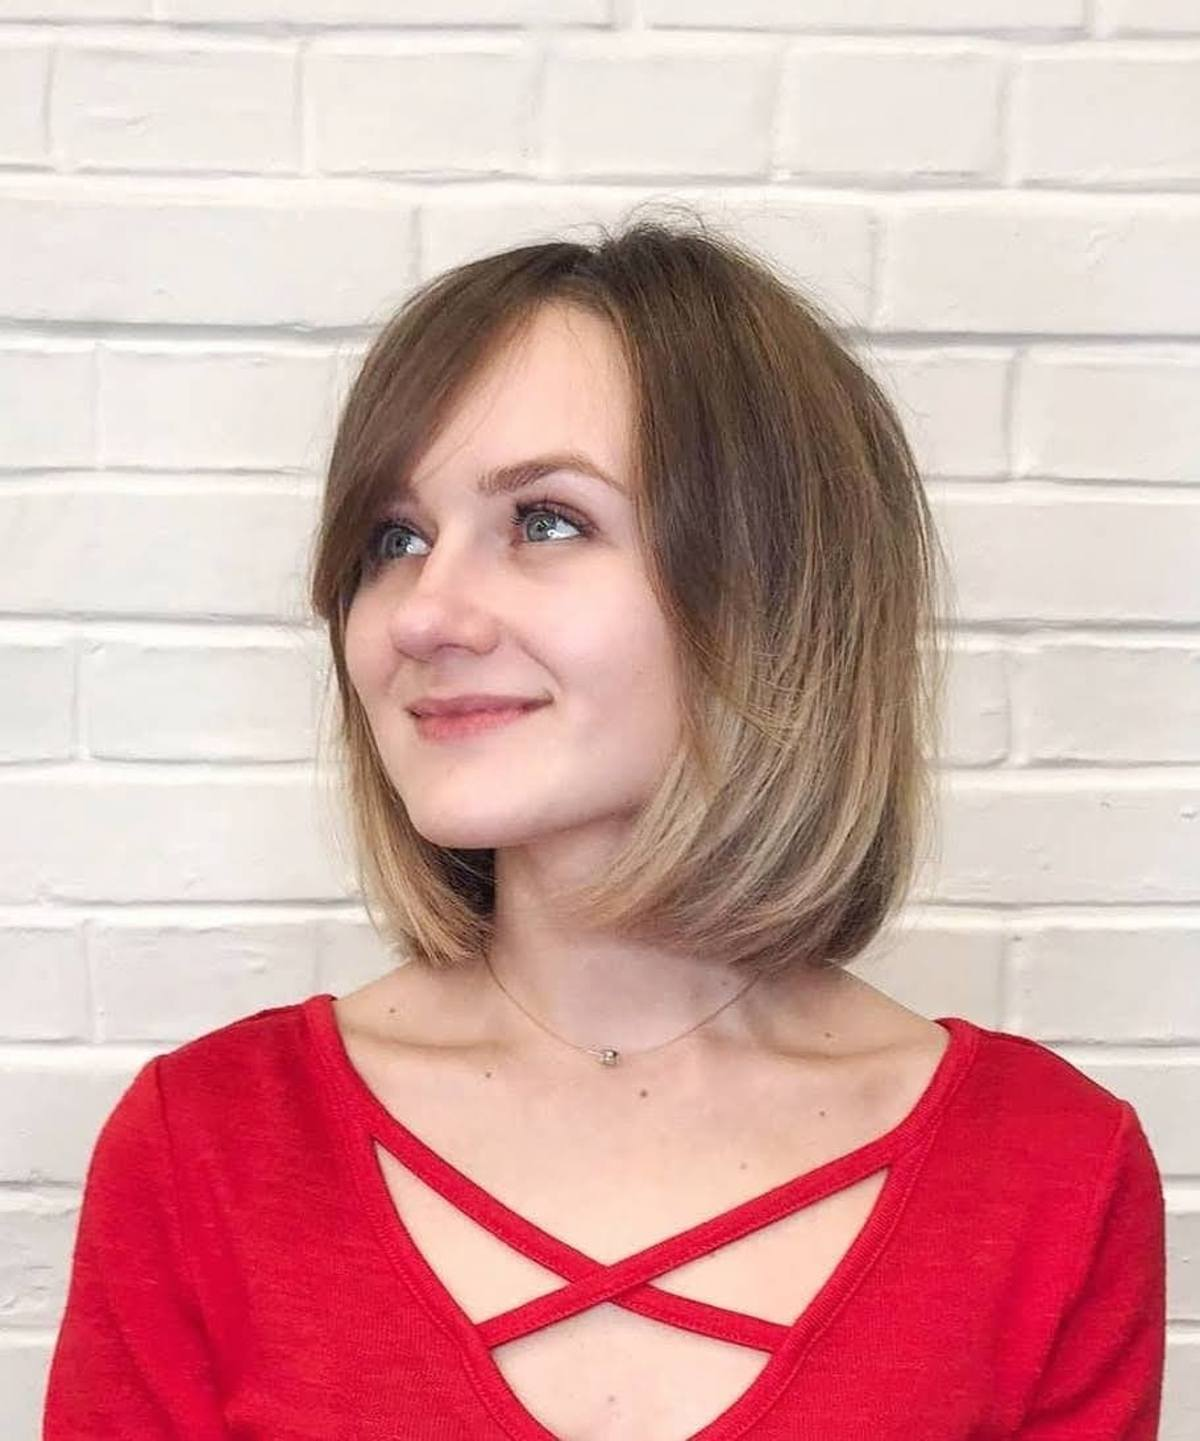 24 Best Short Blunt Bob Haircuts Ideas For Women of All Ages